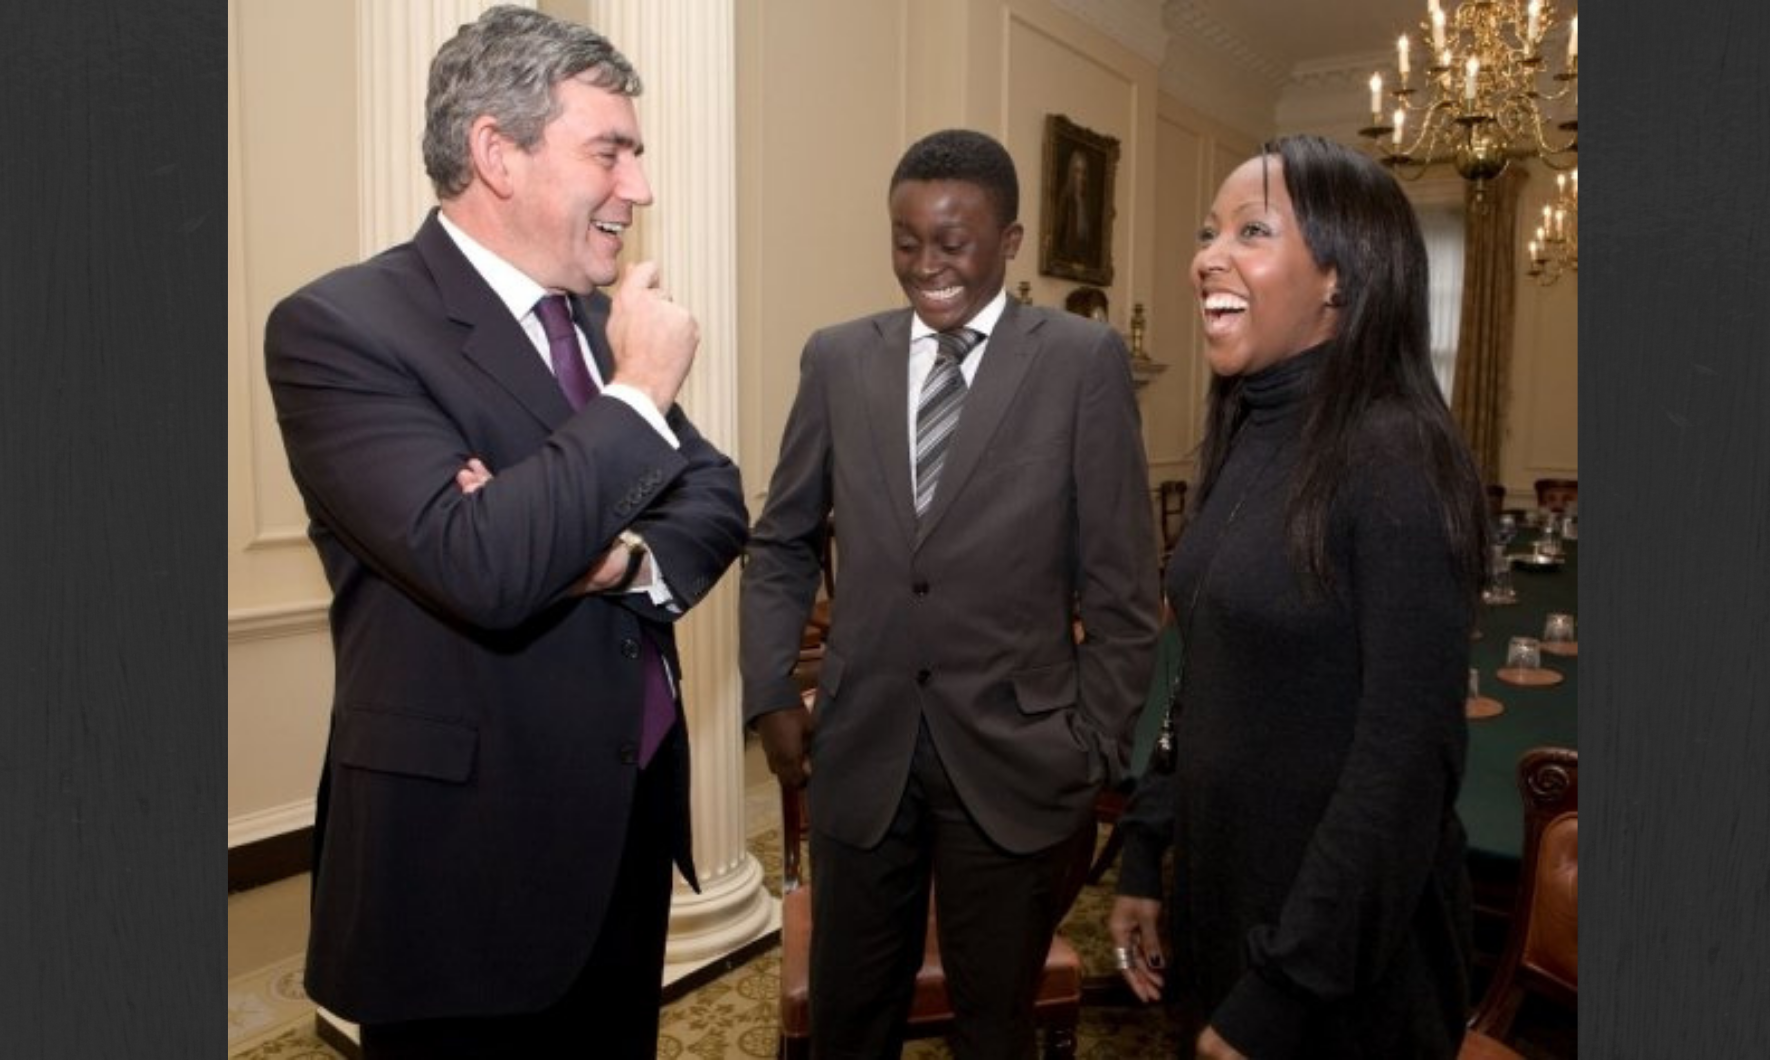 Prime Minister Gordon Brown with Quincy Washington and Angellica Bell at 10 Downing Street